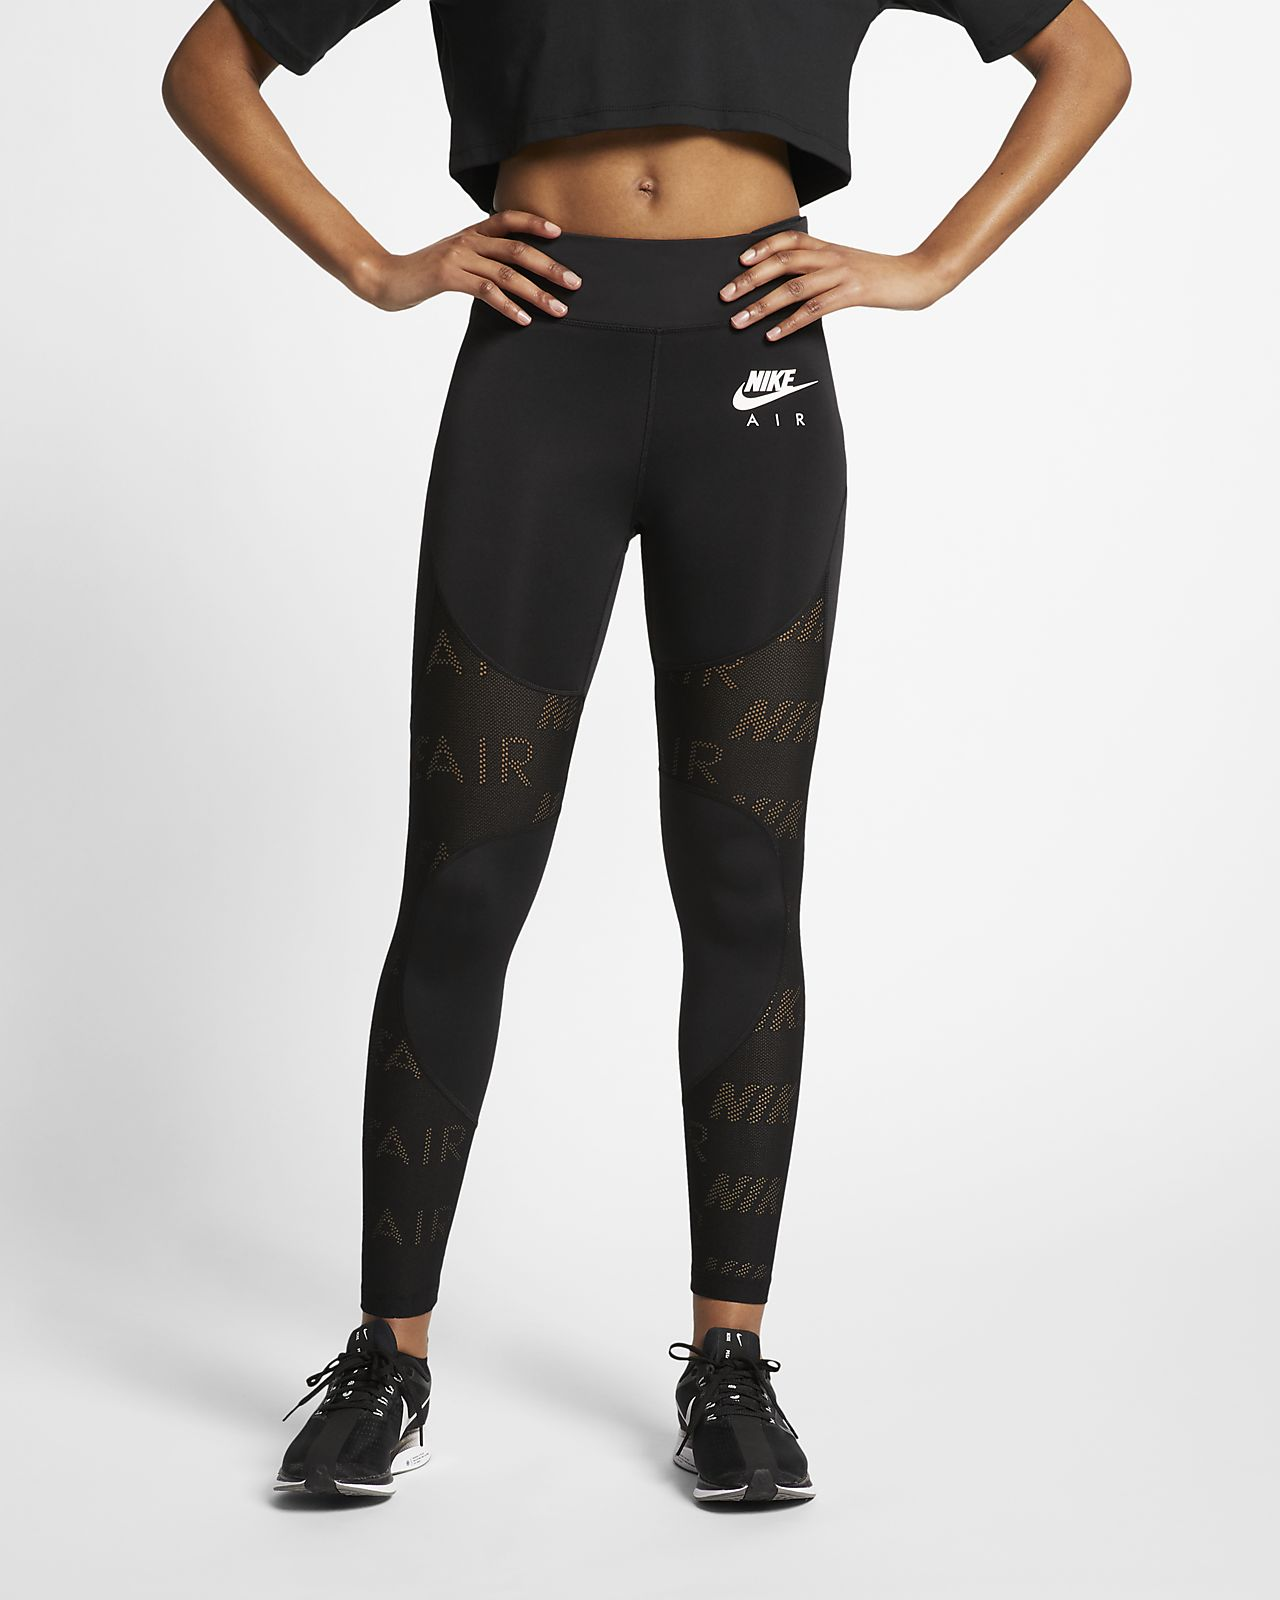 Nike Air Fast Women's 7/8 Running Tights